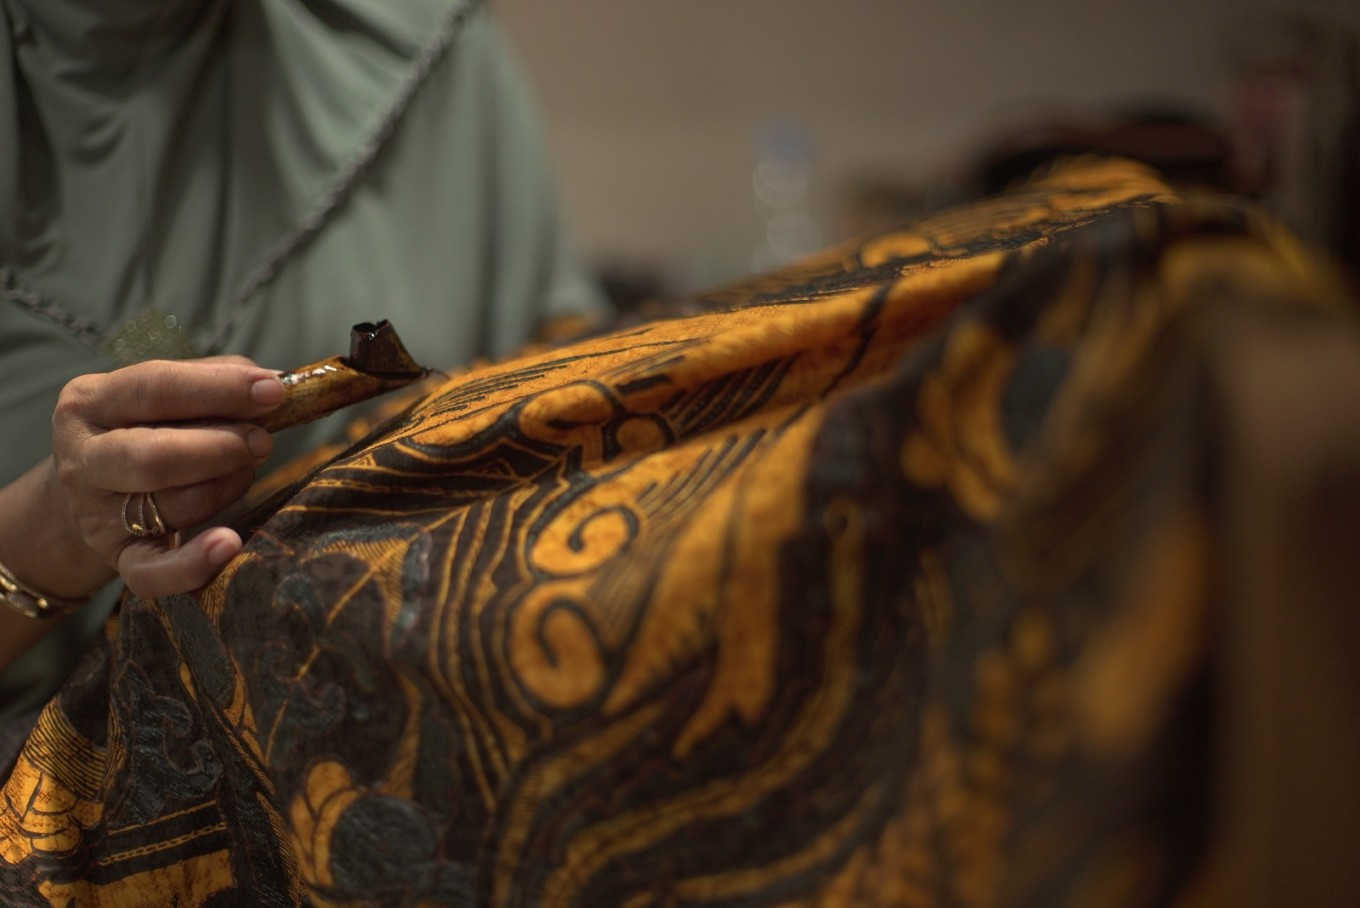 Differences between printed batik and authentic batik 'tulis'